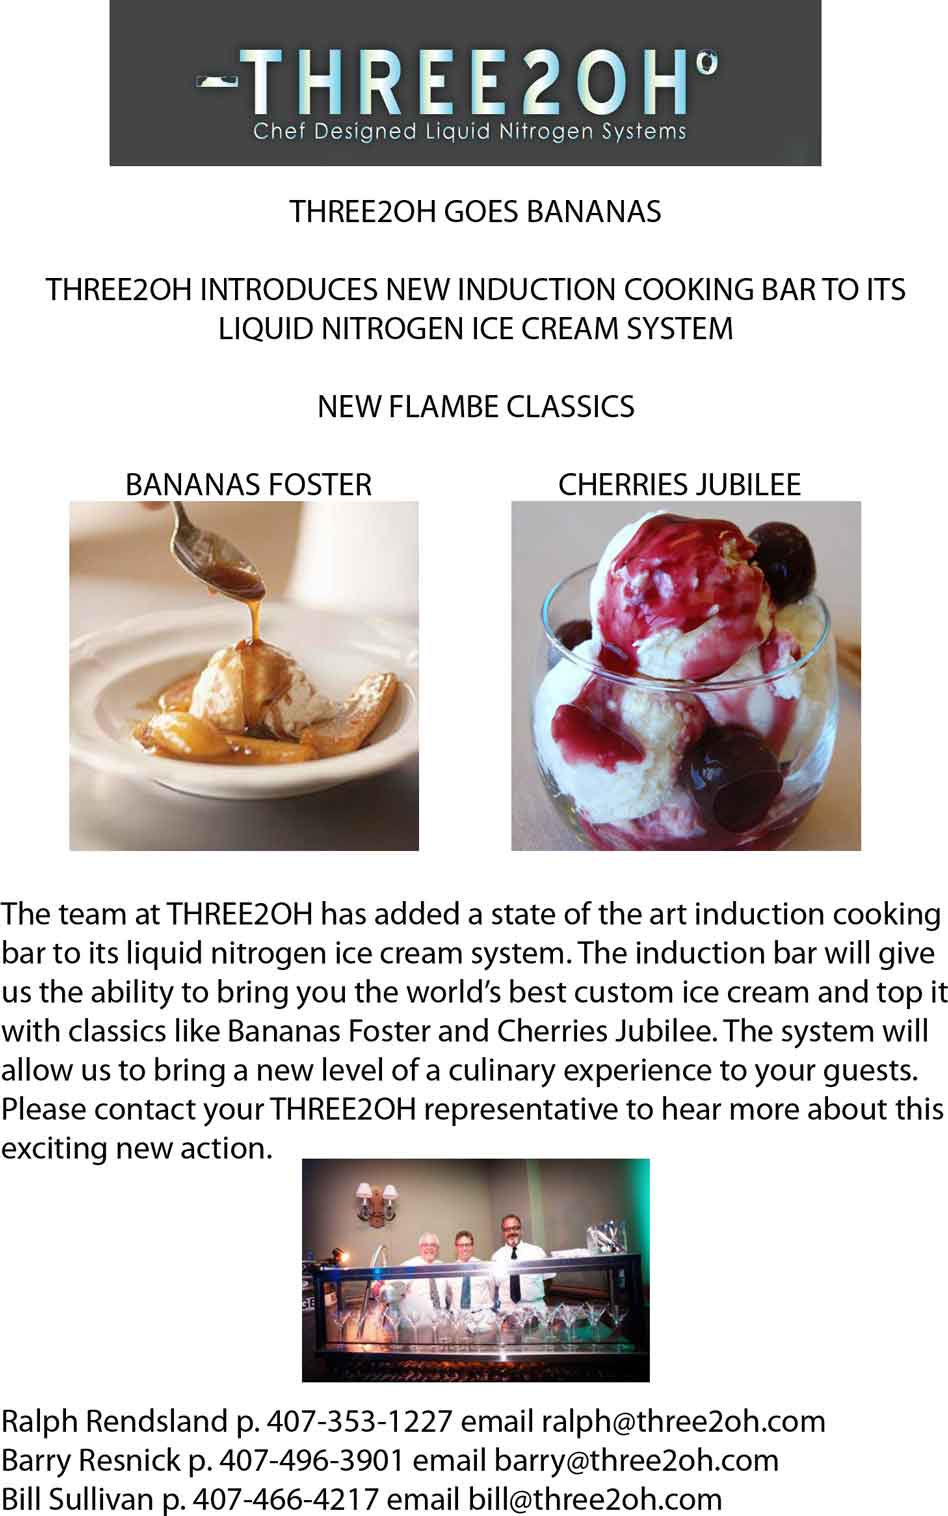 THREE2OH GOES BANANAS THREE2OH INTRODUCES NEW INDUCTION COOKING BAR TO ITS LIQUID NITROGEN ICE CREAM SYSTEM NEW FLAMBE CLASSICS BANANAS FOSTER CHERRIES JUBILEE The team at THREE2OH has added a state of the art induction cooking bar to its liquid nitrogen ice cream system. The induction bar will give us the ability to bring you the world's best custom ice cream and top it with classics like Bananas Foster and Cherries Jubilee. The system will allow us to bring a new level of a culinary experience to your guests. Please contact your THREE2OH representative to hear more about this exciting new action.